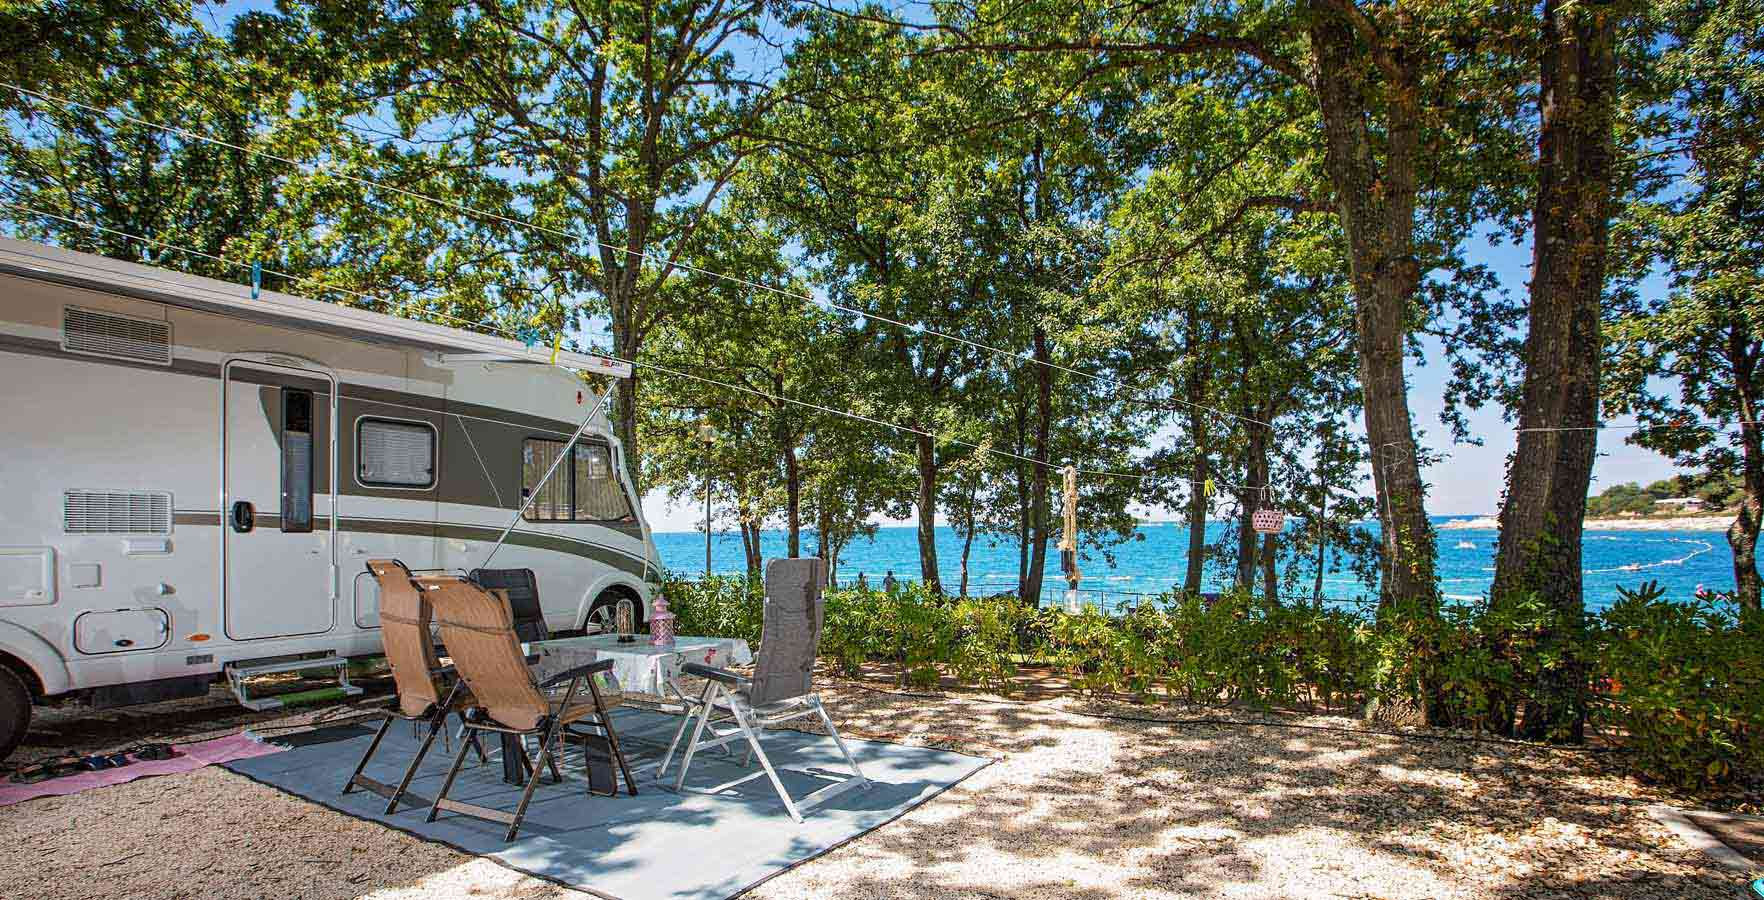 Campsite Bijela Uvala - pitches by the sea